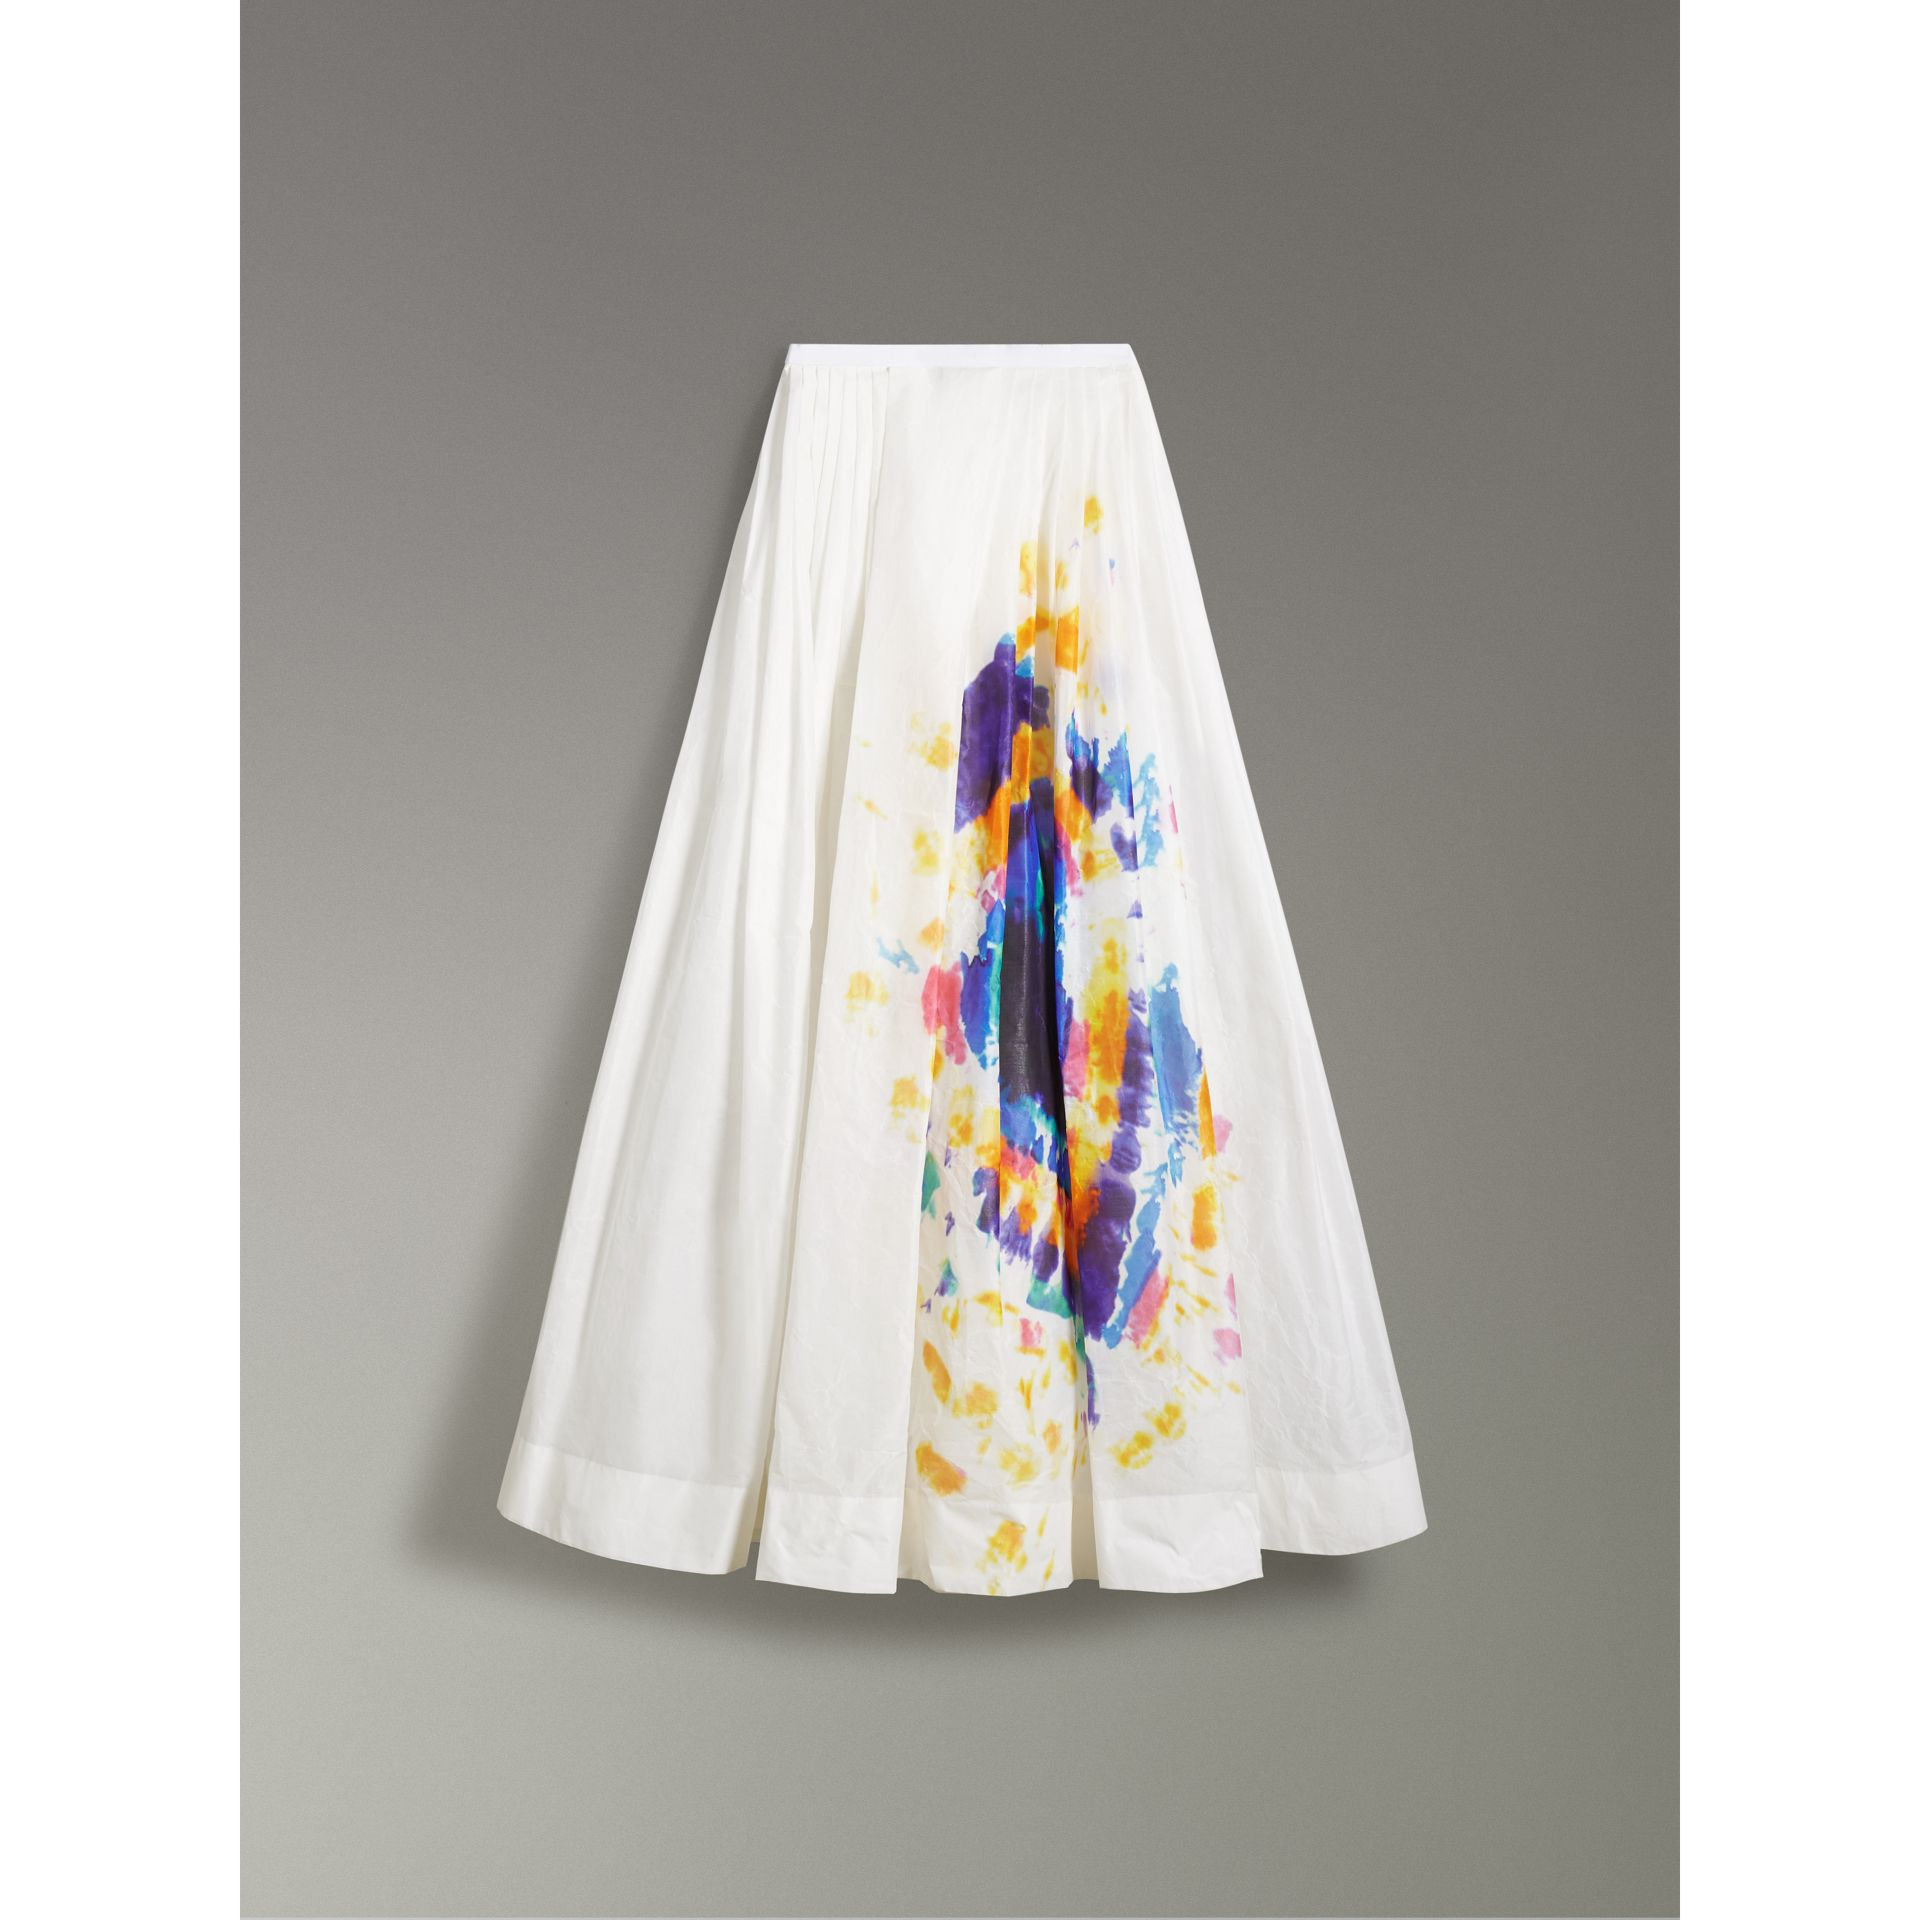 Tie-dye Print Maxi Skirt in Multi-bright Blue - Women | Burberry Canada - gallery image 3